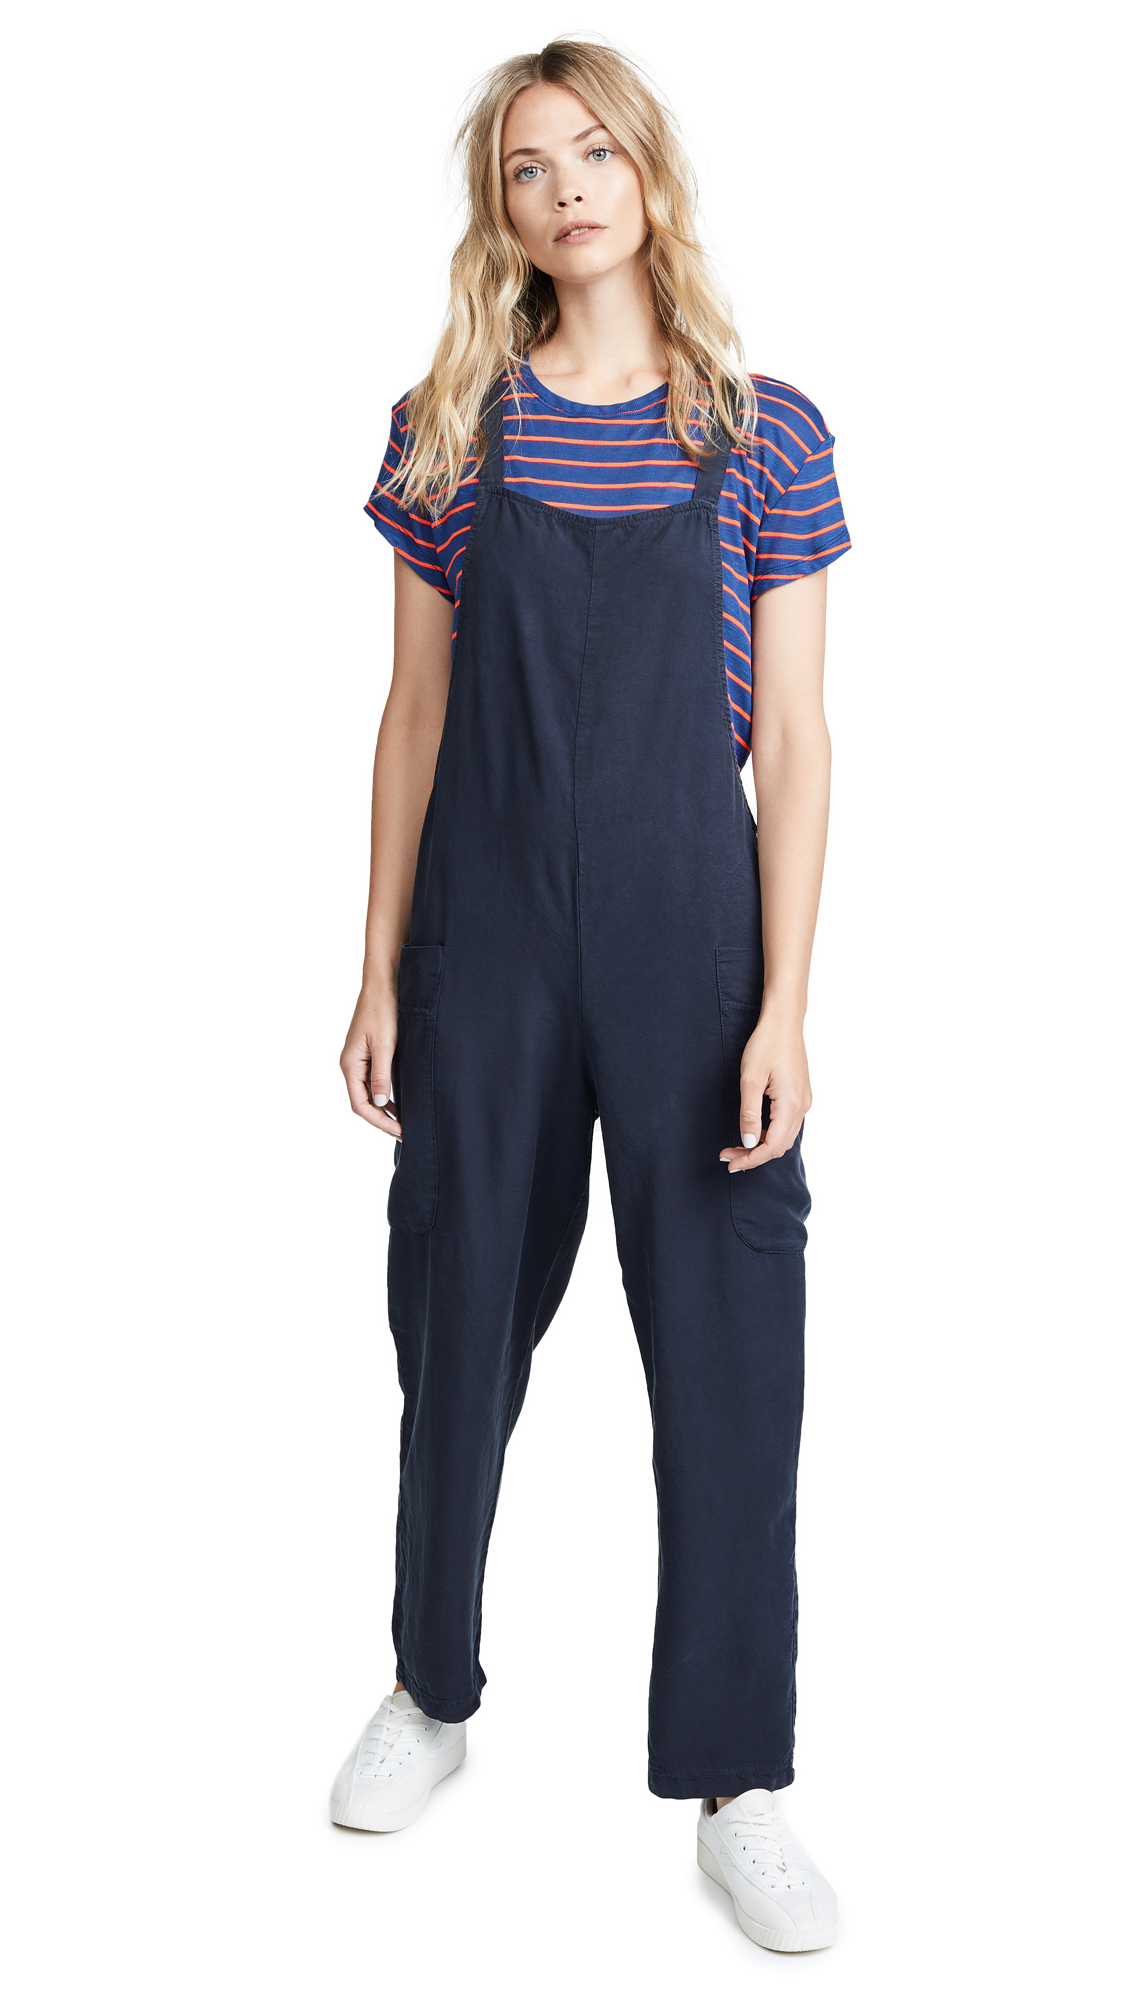 Sol Angeles Overall Romper